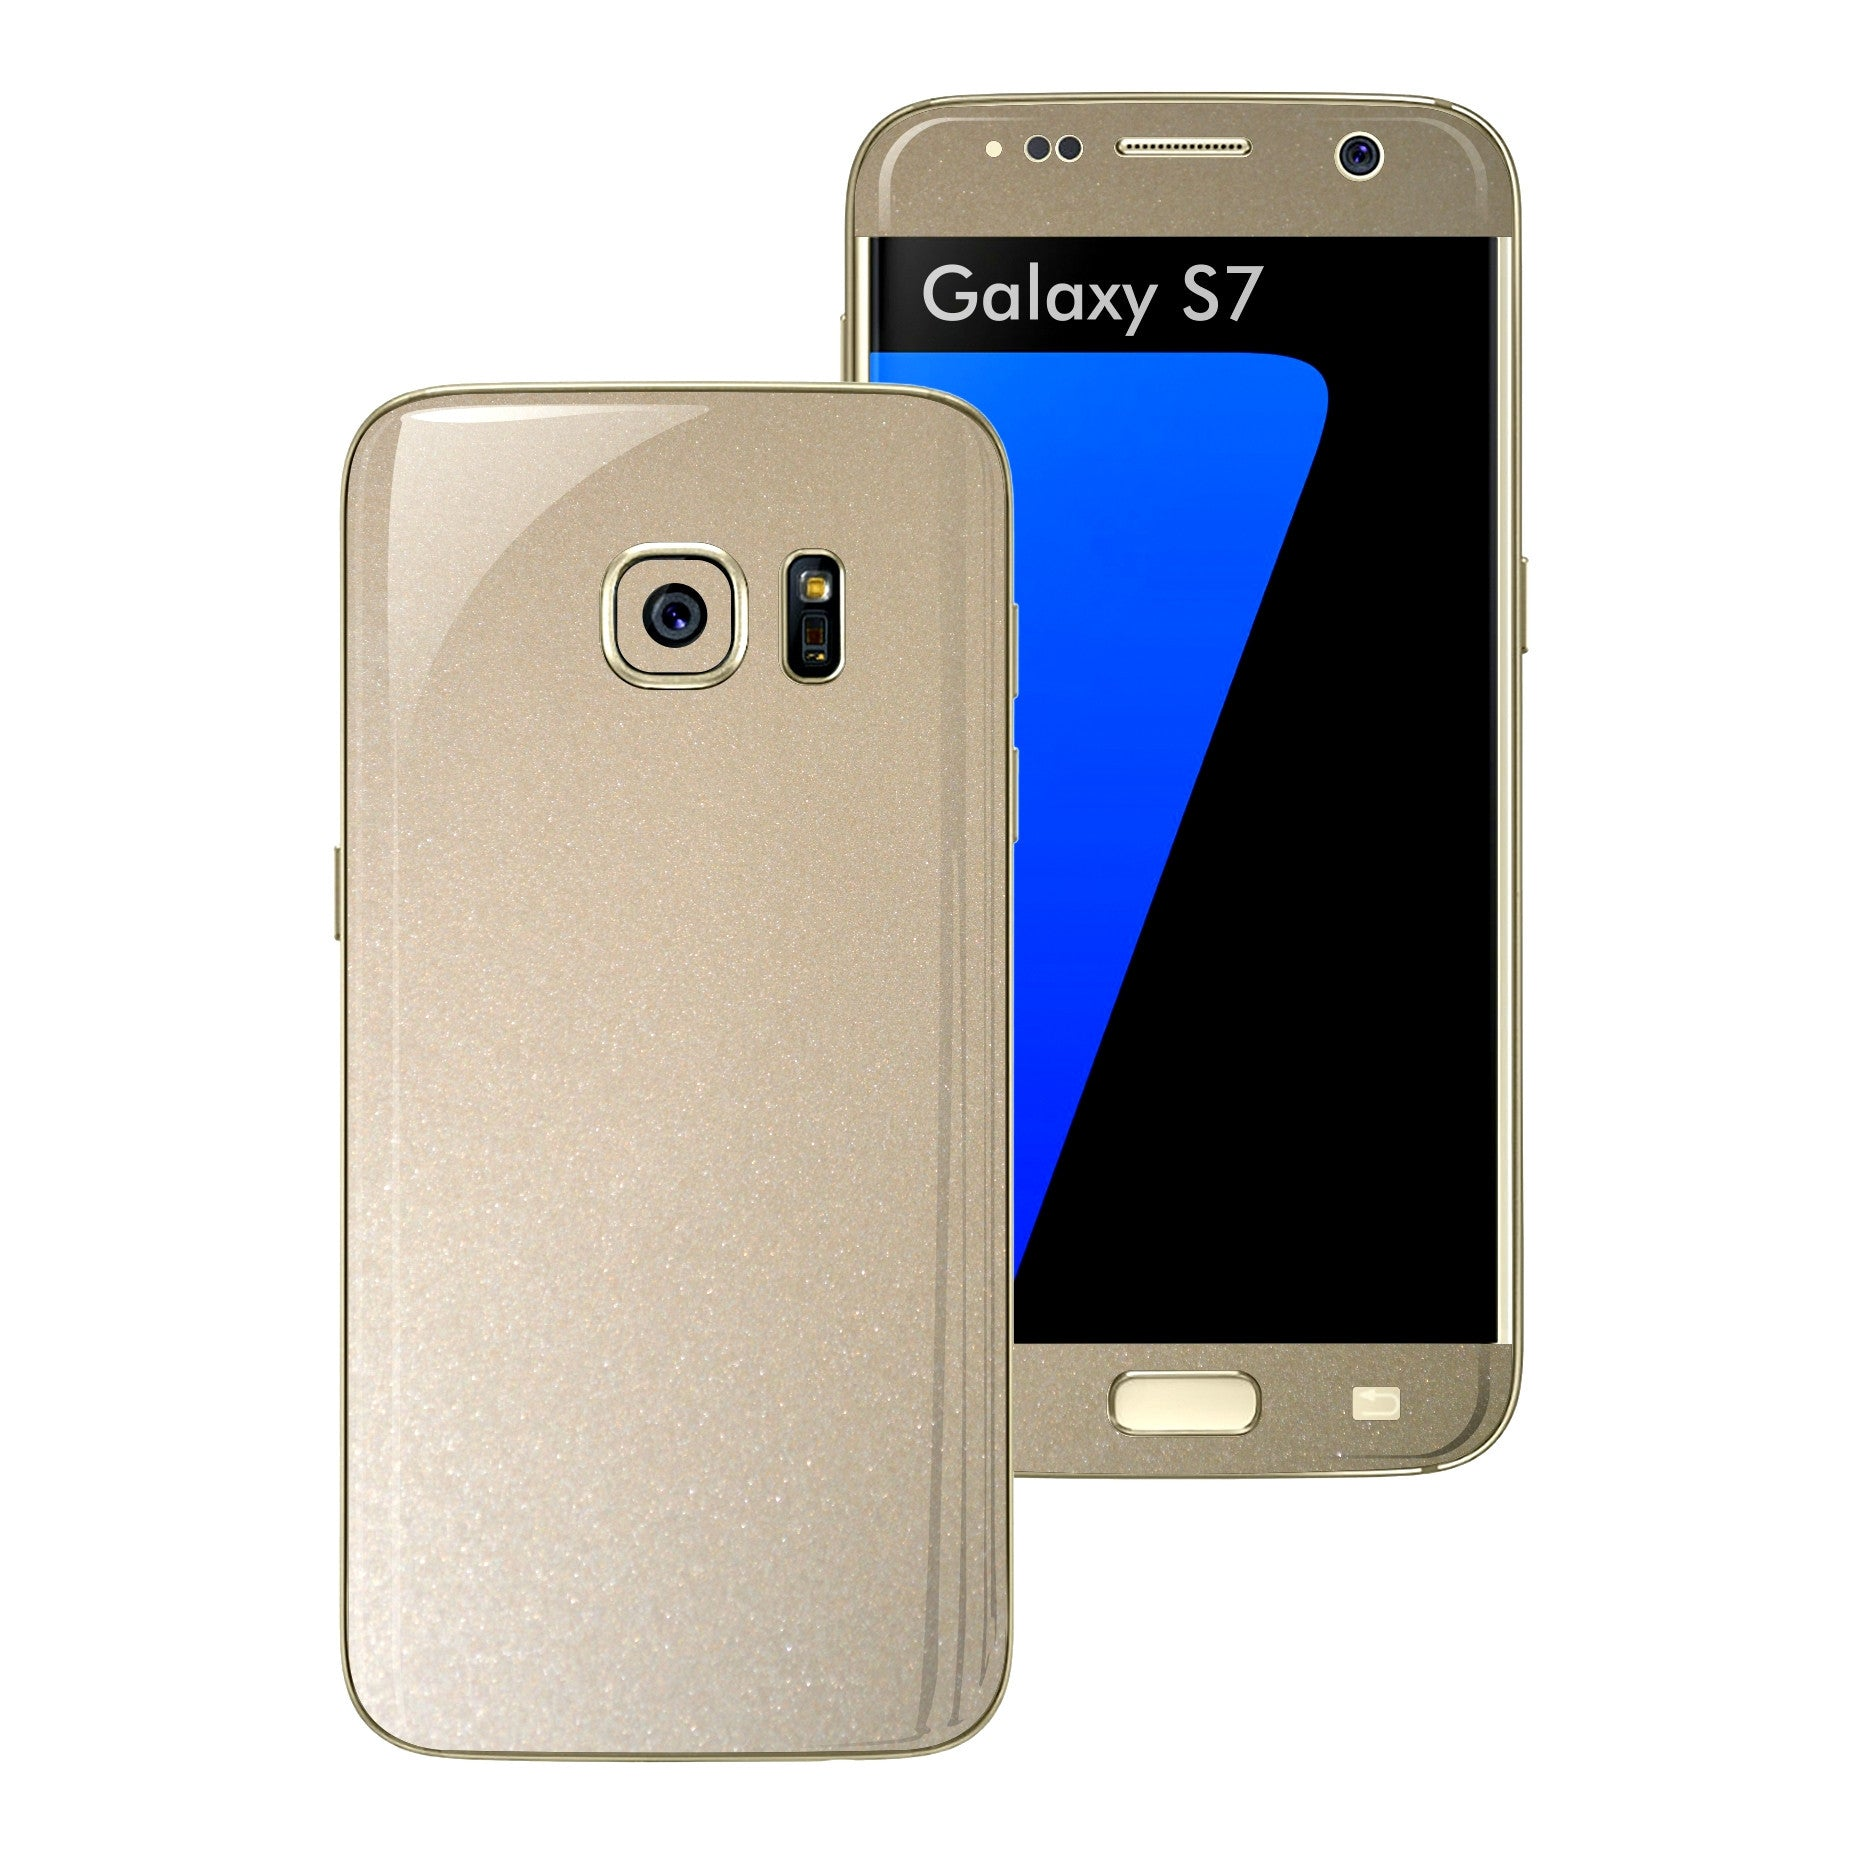 Samsung Galaxy S7 Glossy Champagne GOLD Metallic Skin Wrap Decal Sticker Cover Protector by EasySkinz